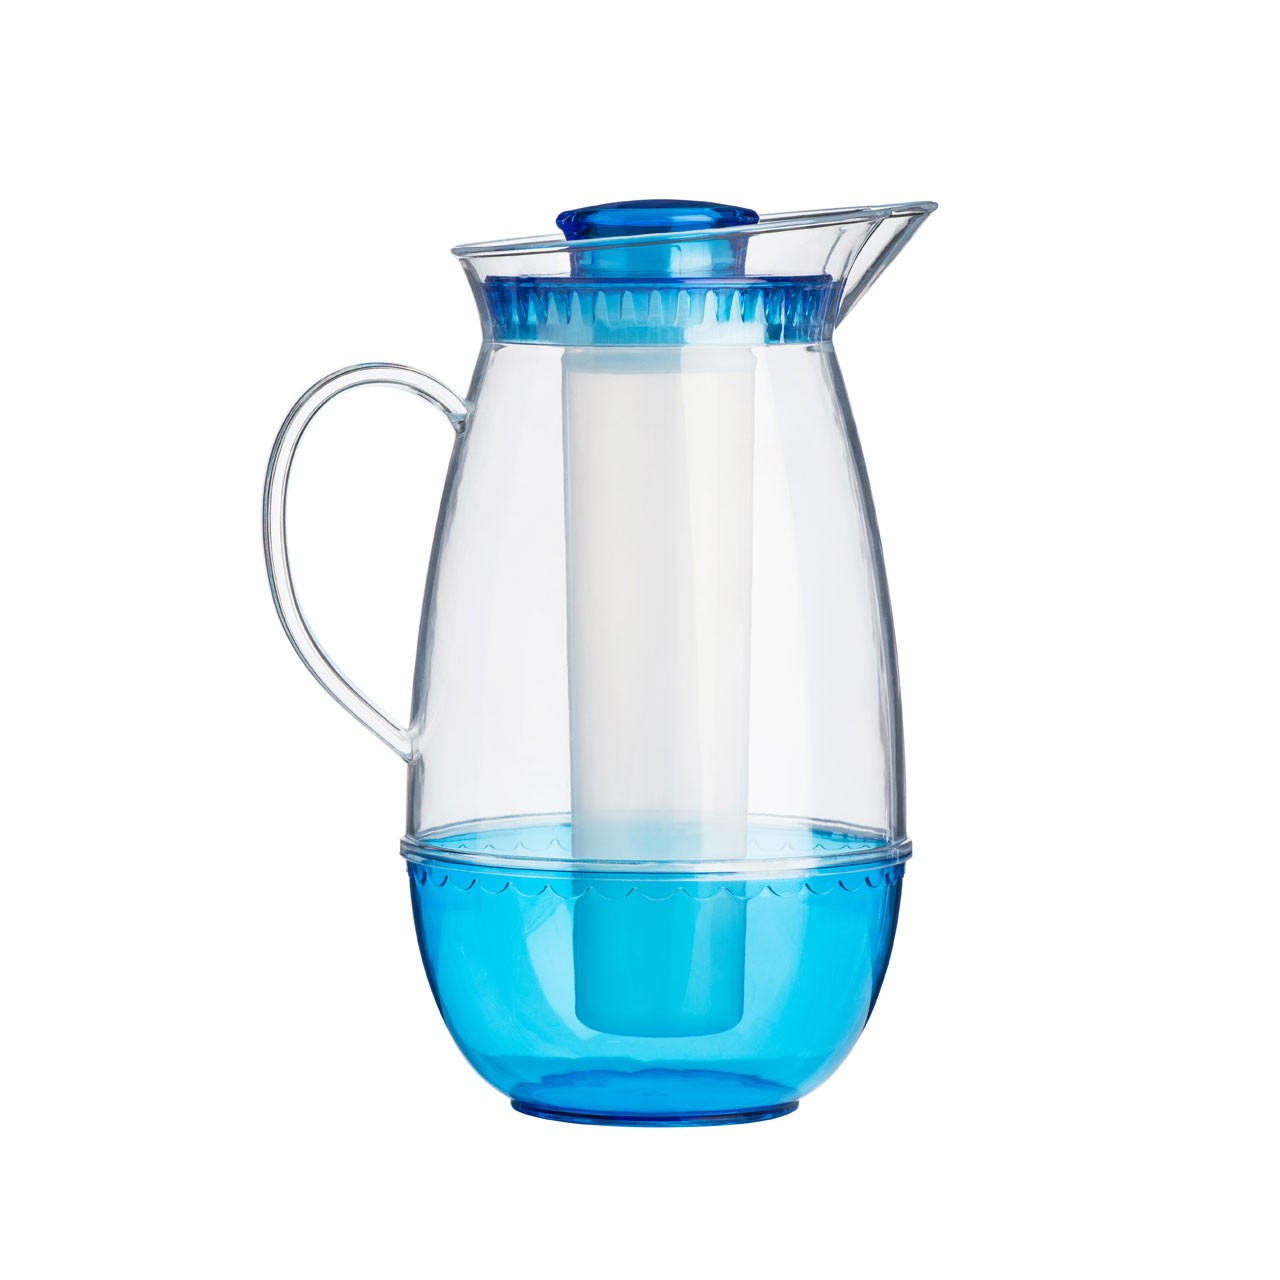 Jug with Ice Chamber - Clear/Blue